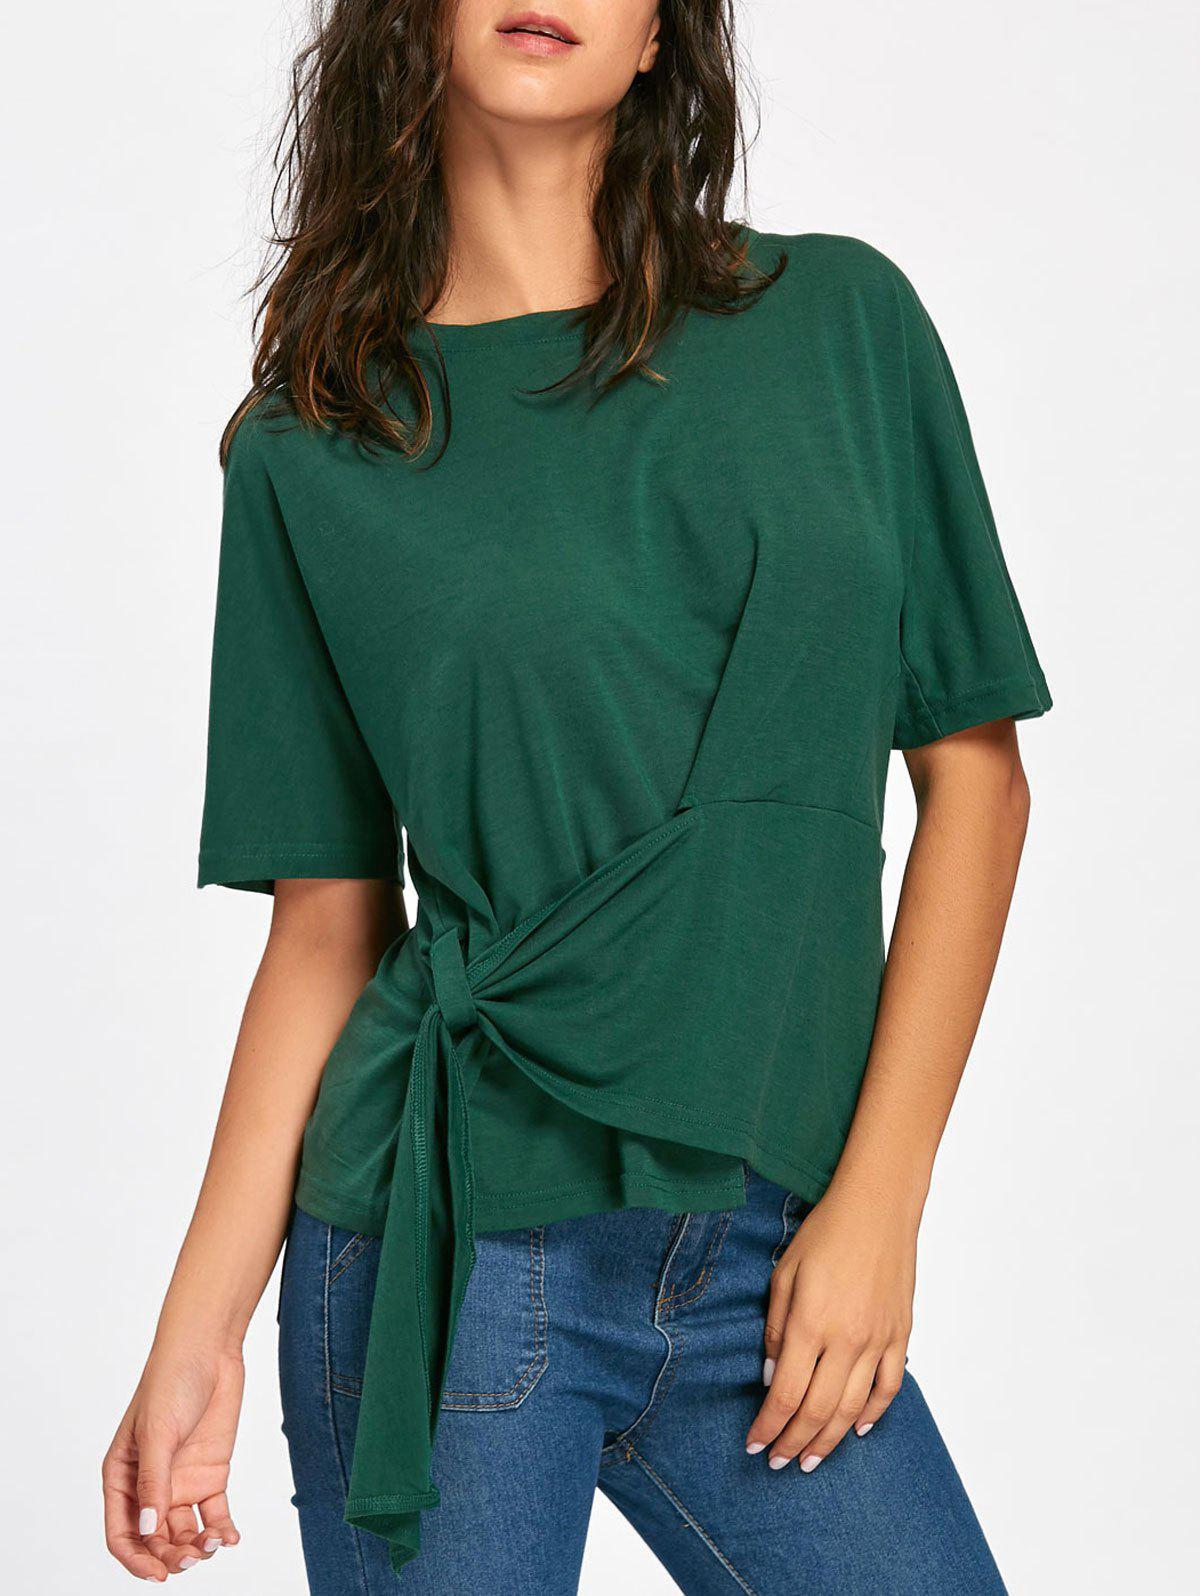 Batwing Sleeve Asymmetrical Front Tie T-shirt - BLACKISH GREEN 2XL